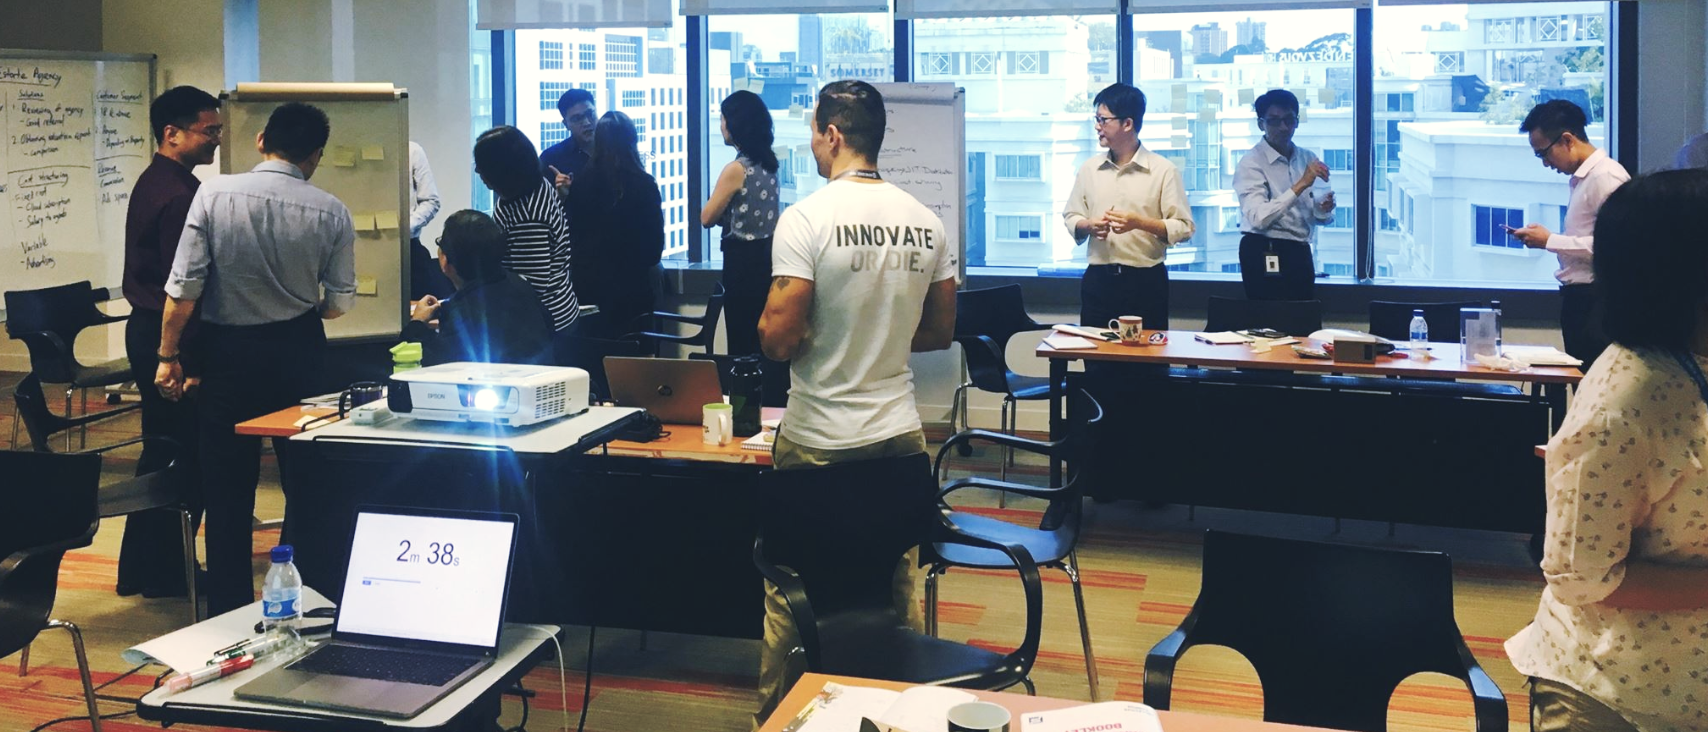 Collective Campus designed and ran two one-day crash-courses for 40 participants. The course covered ideation methods, innovation theory, business model development and emerging technologies.